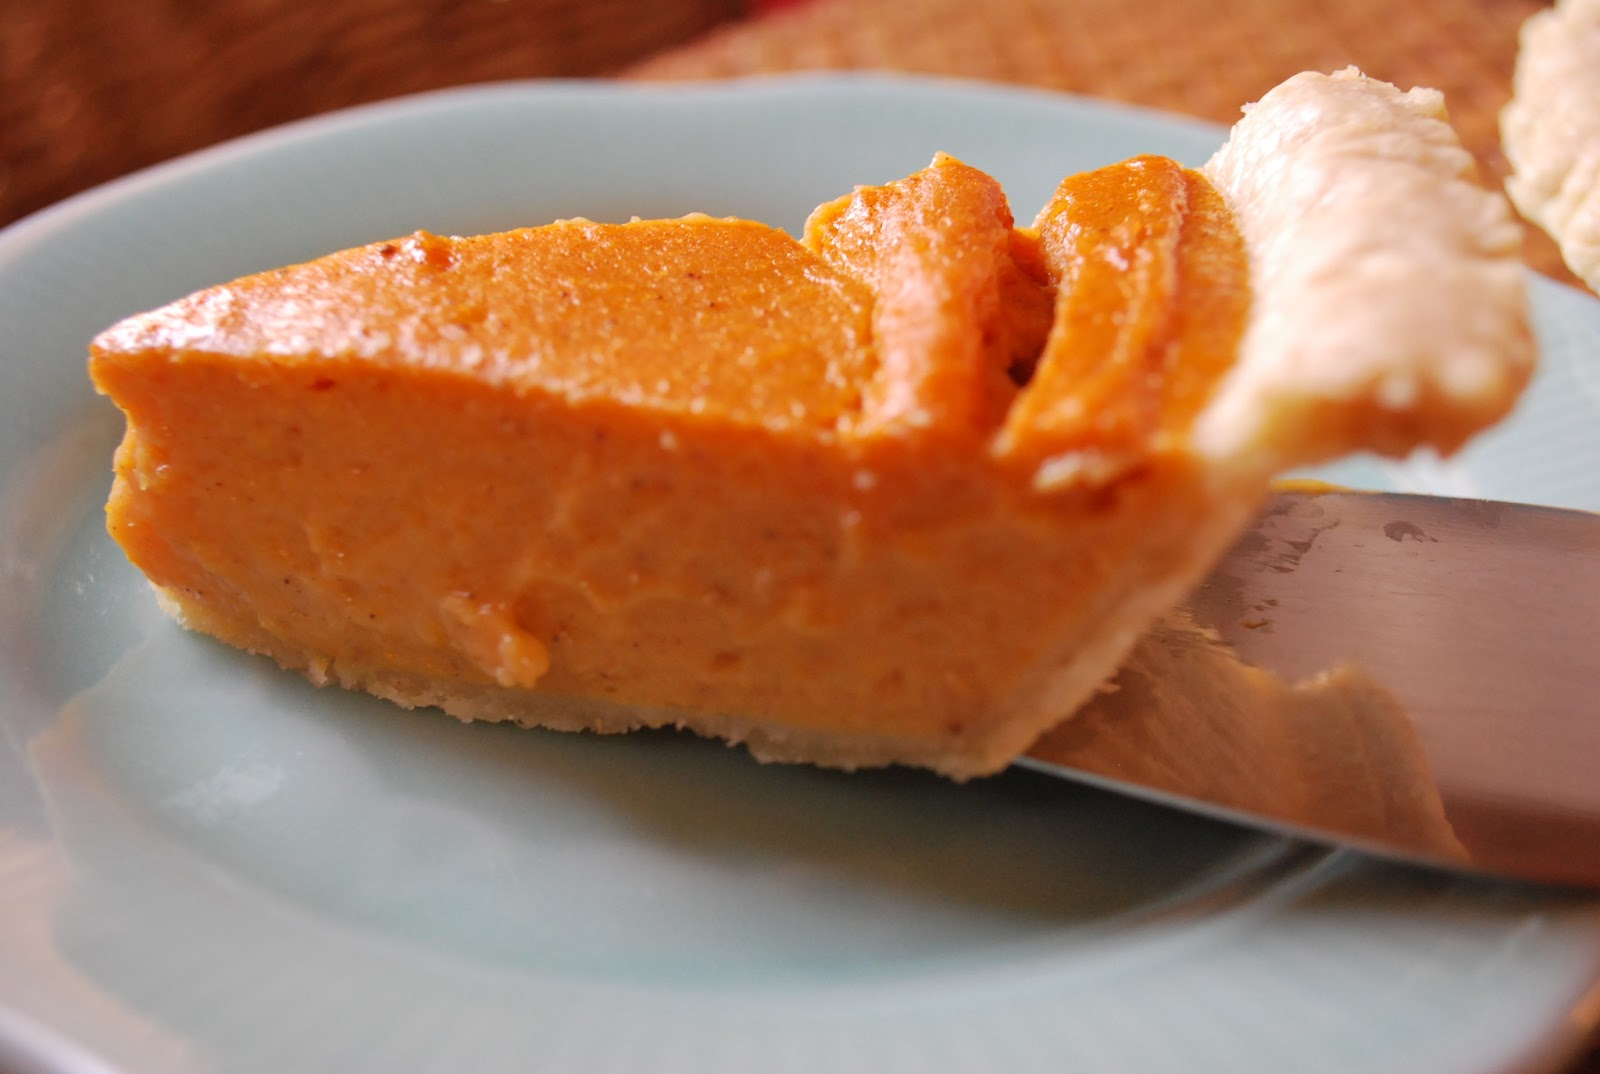 ... sweet potato potato salad sweet potato pie jpg ever made a pie